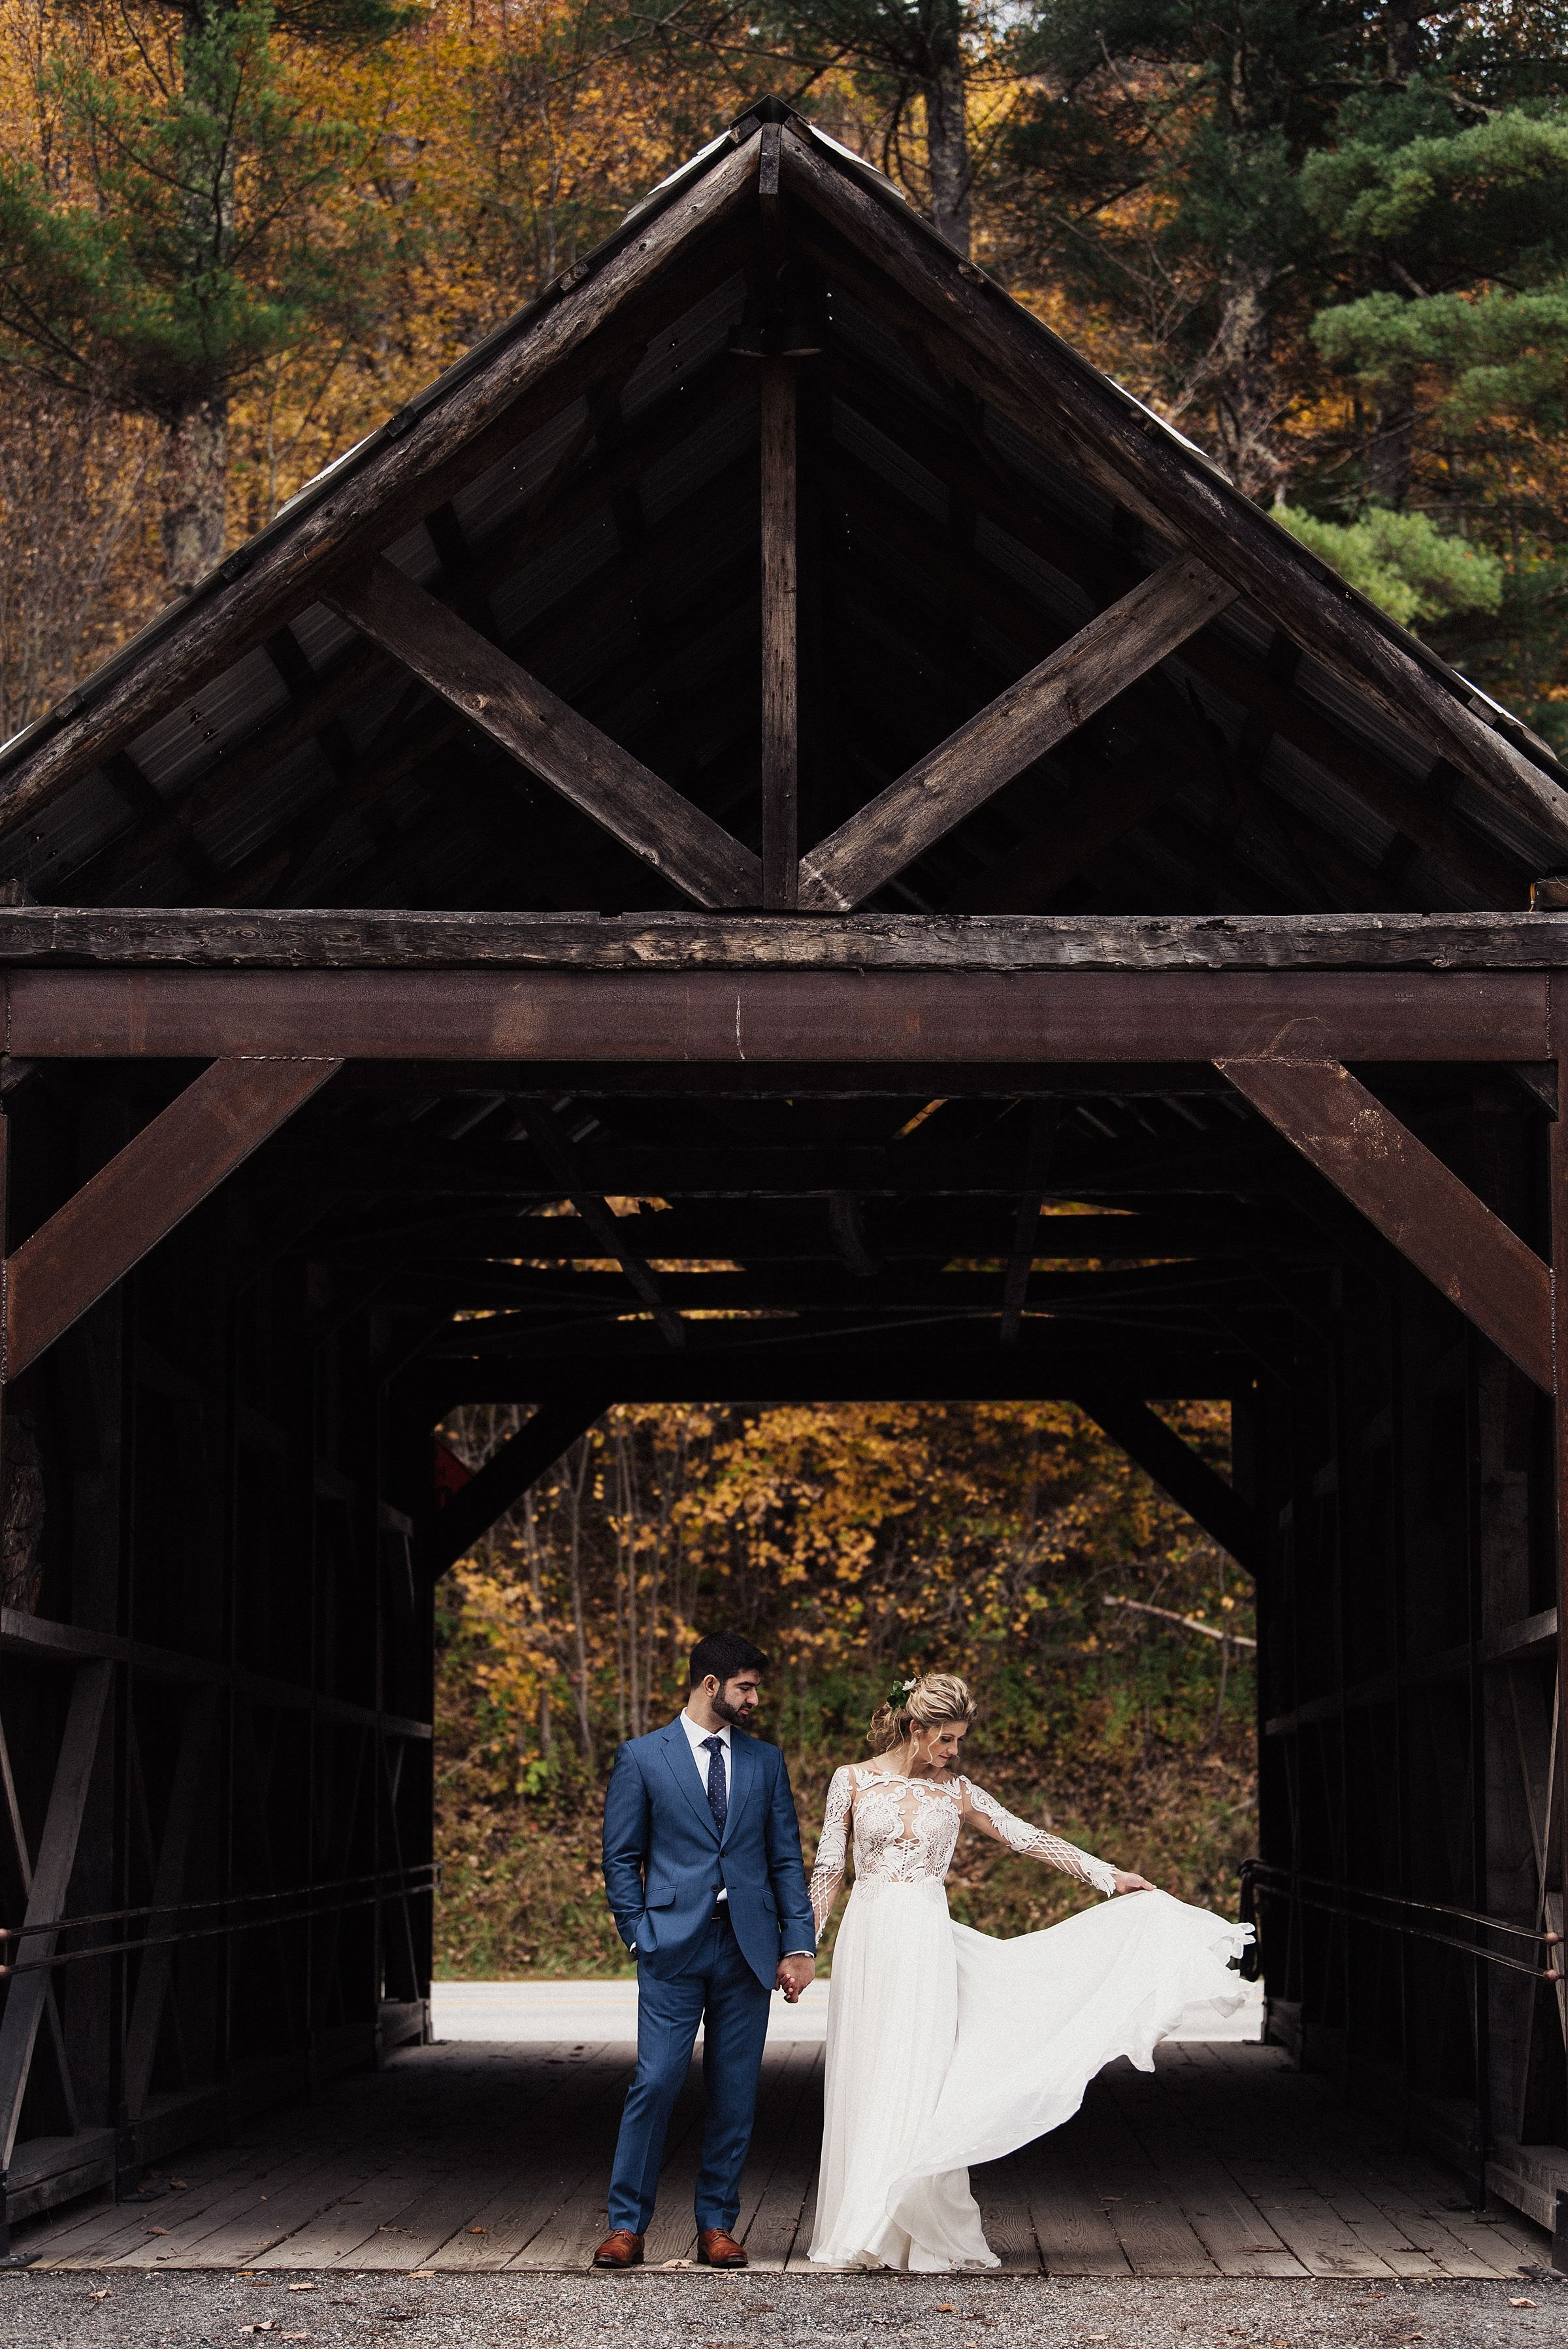 Eliza And Chris Fall Wedding In Vermont Vermont Wedding Salt Lake City Wedding Vermont Wedding Venues